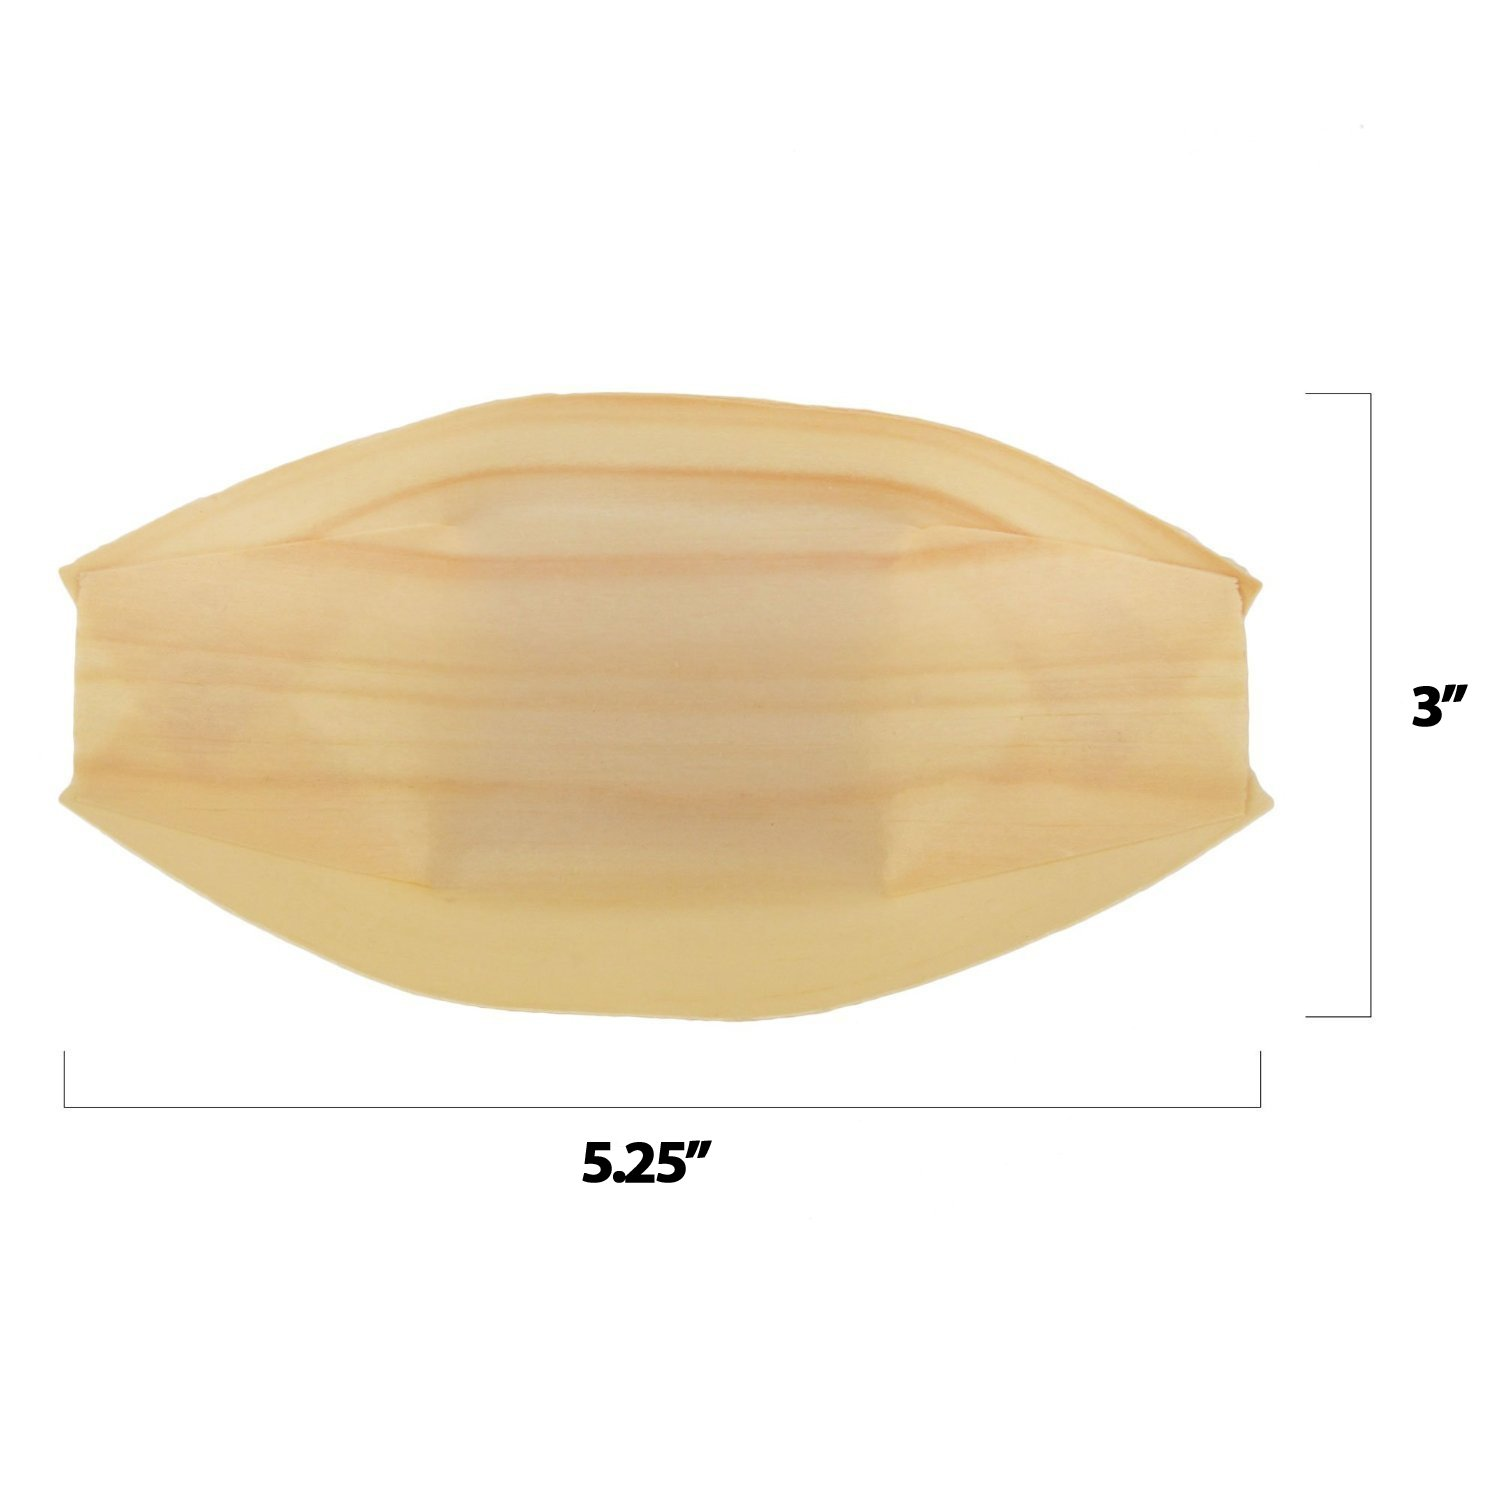 BambooMN Brand - Disposable Wood Boat Plates / Dishes, 5.25'' Long x 3'' Wide x 1'' High, 100 Pieces by BambooMN (Image #2)